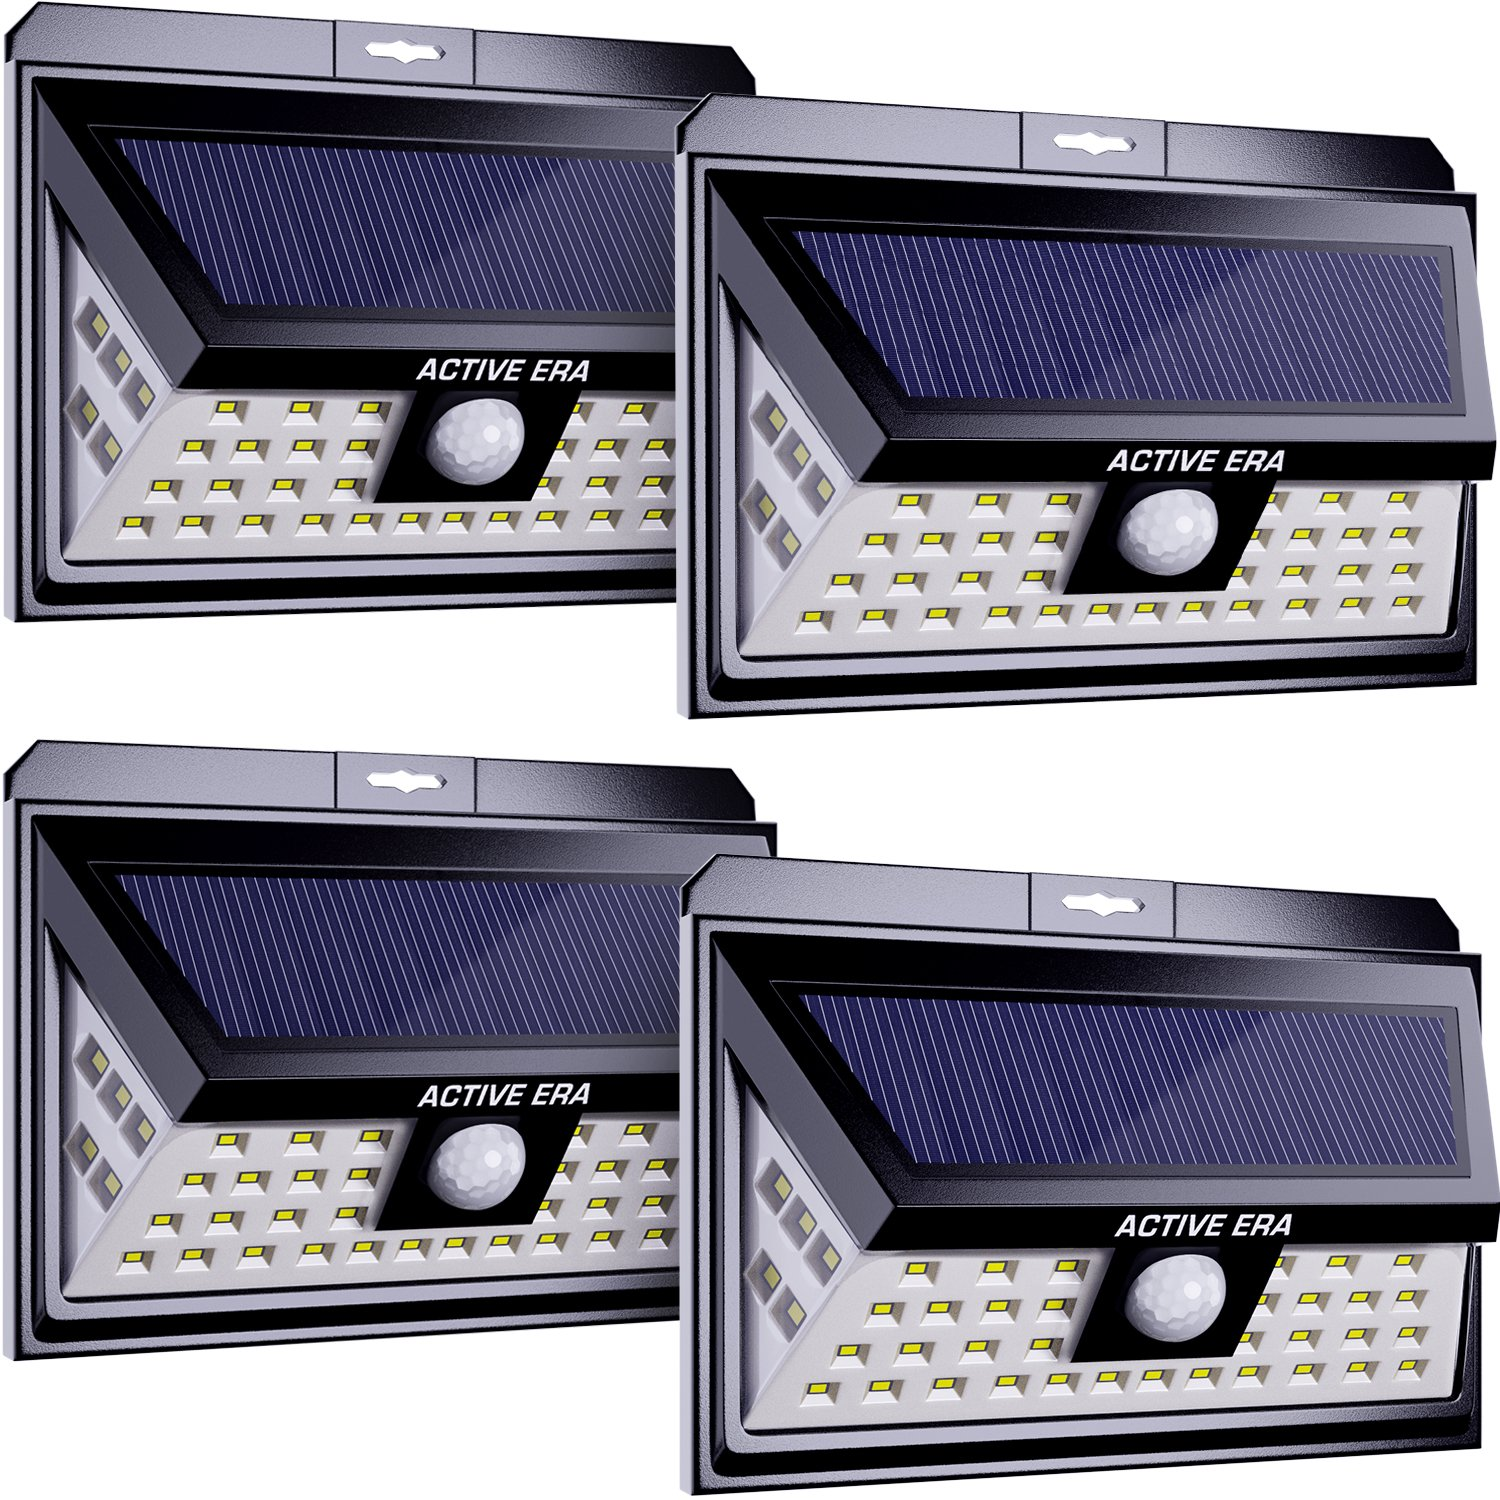 Active Era Solar Powered Wireless Outdoor 44 x LED Security Light with Motion Sensor & Waterproof Design, Bright Solar Lights for Front Door, Patio, Back Yard, Driveway, Steps & Garage (4 Pack)